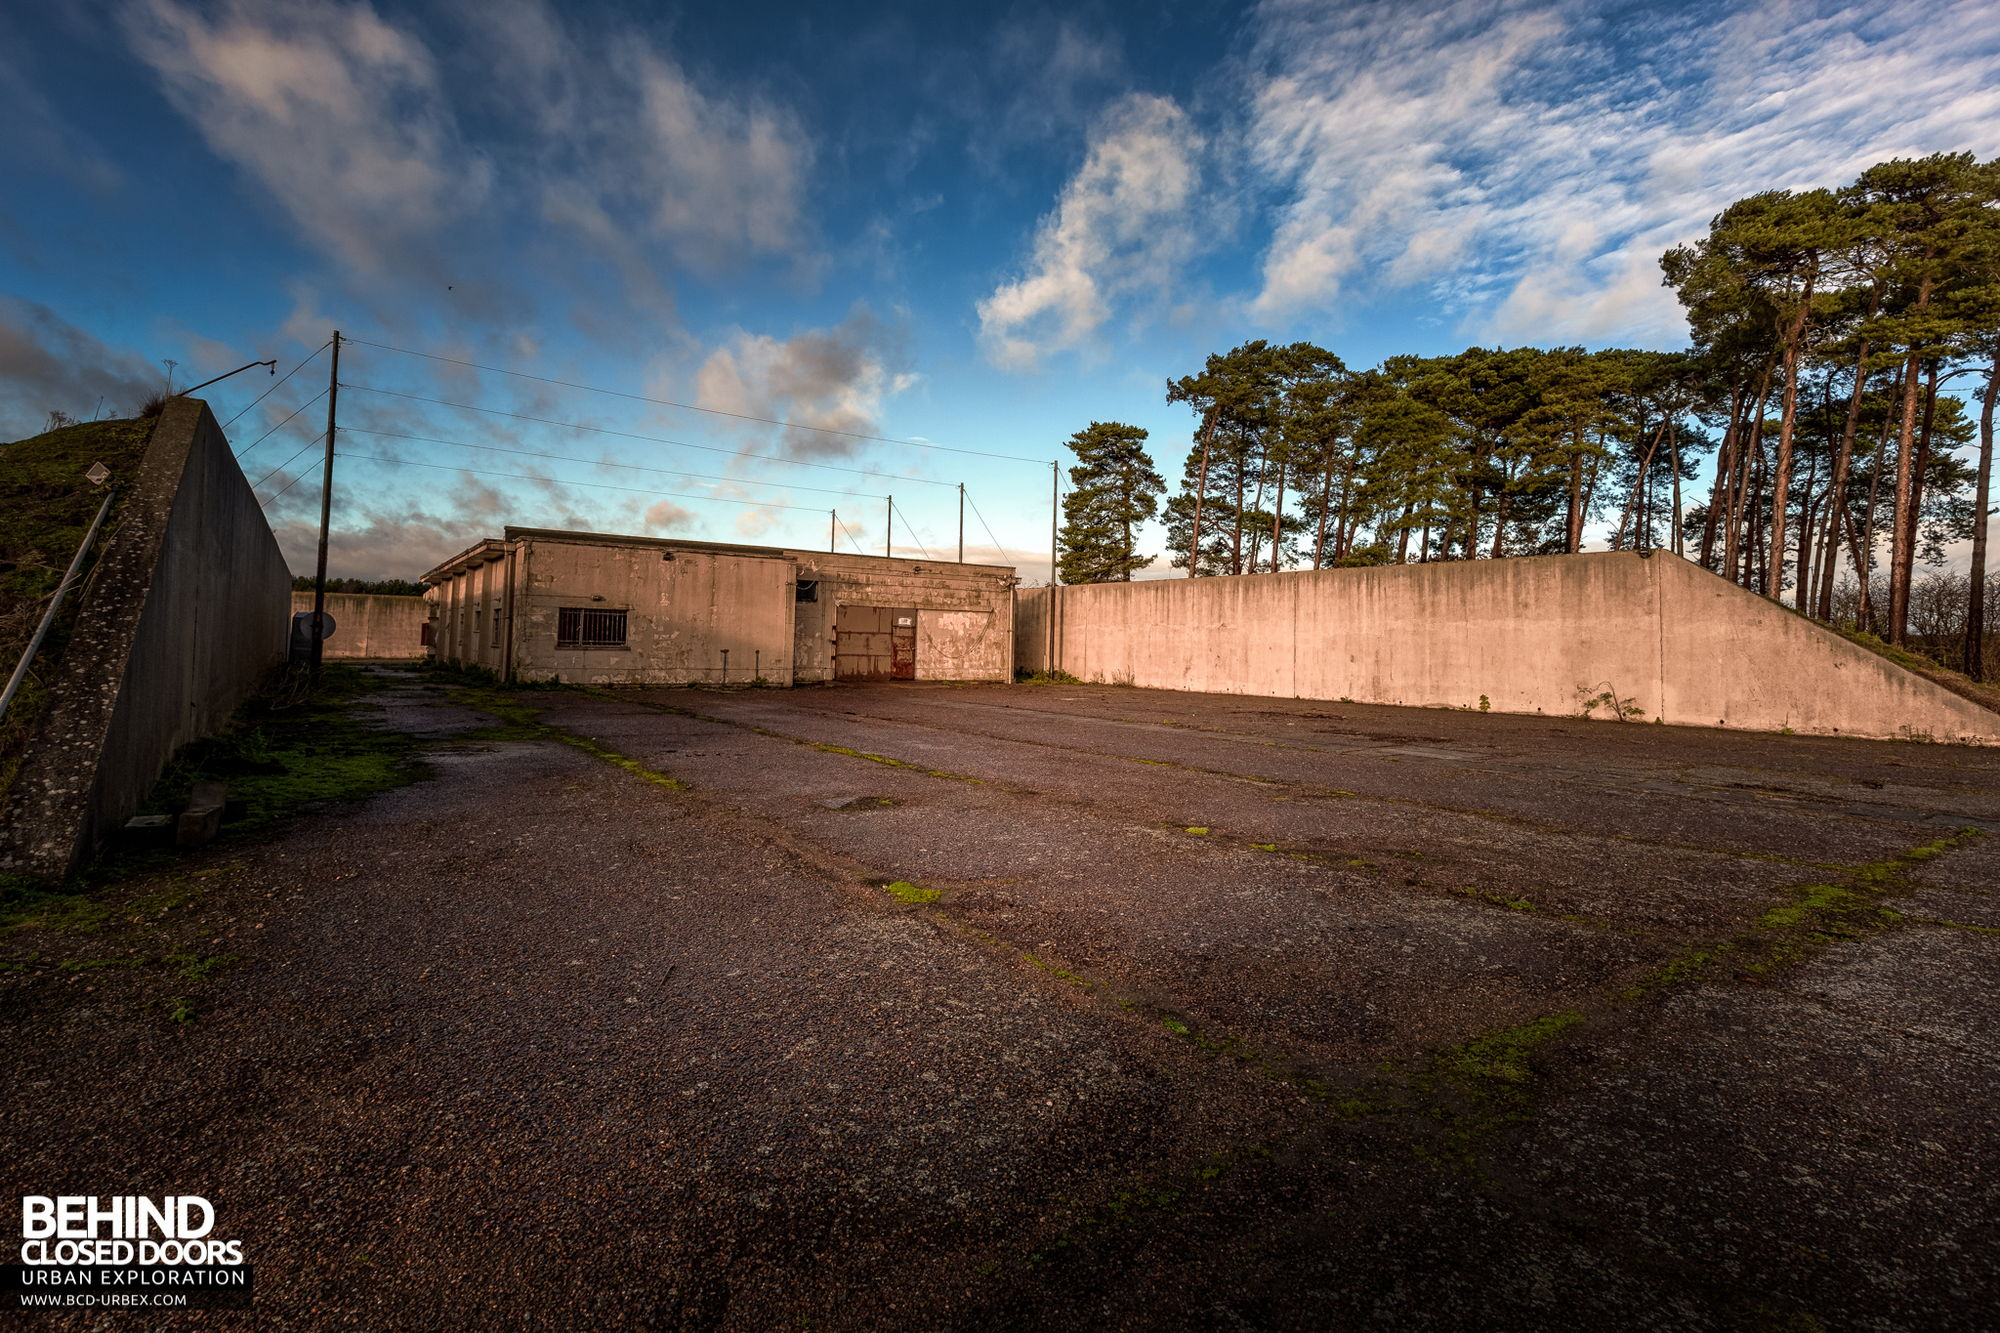 RAF Bentwaters - One of the storage facilities with overhead cables